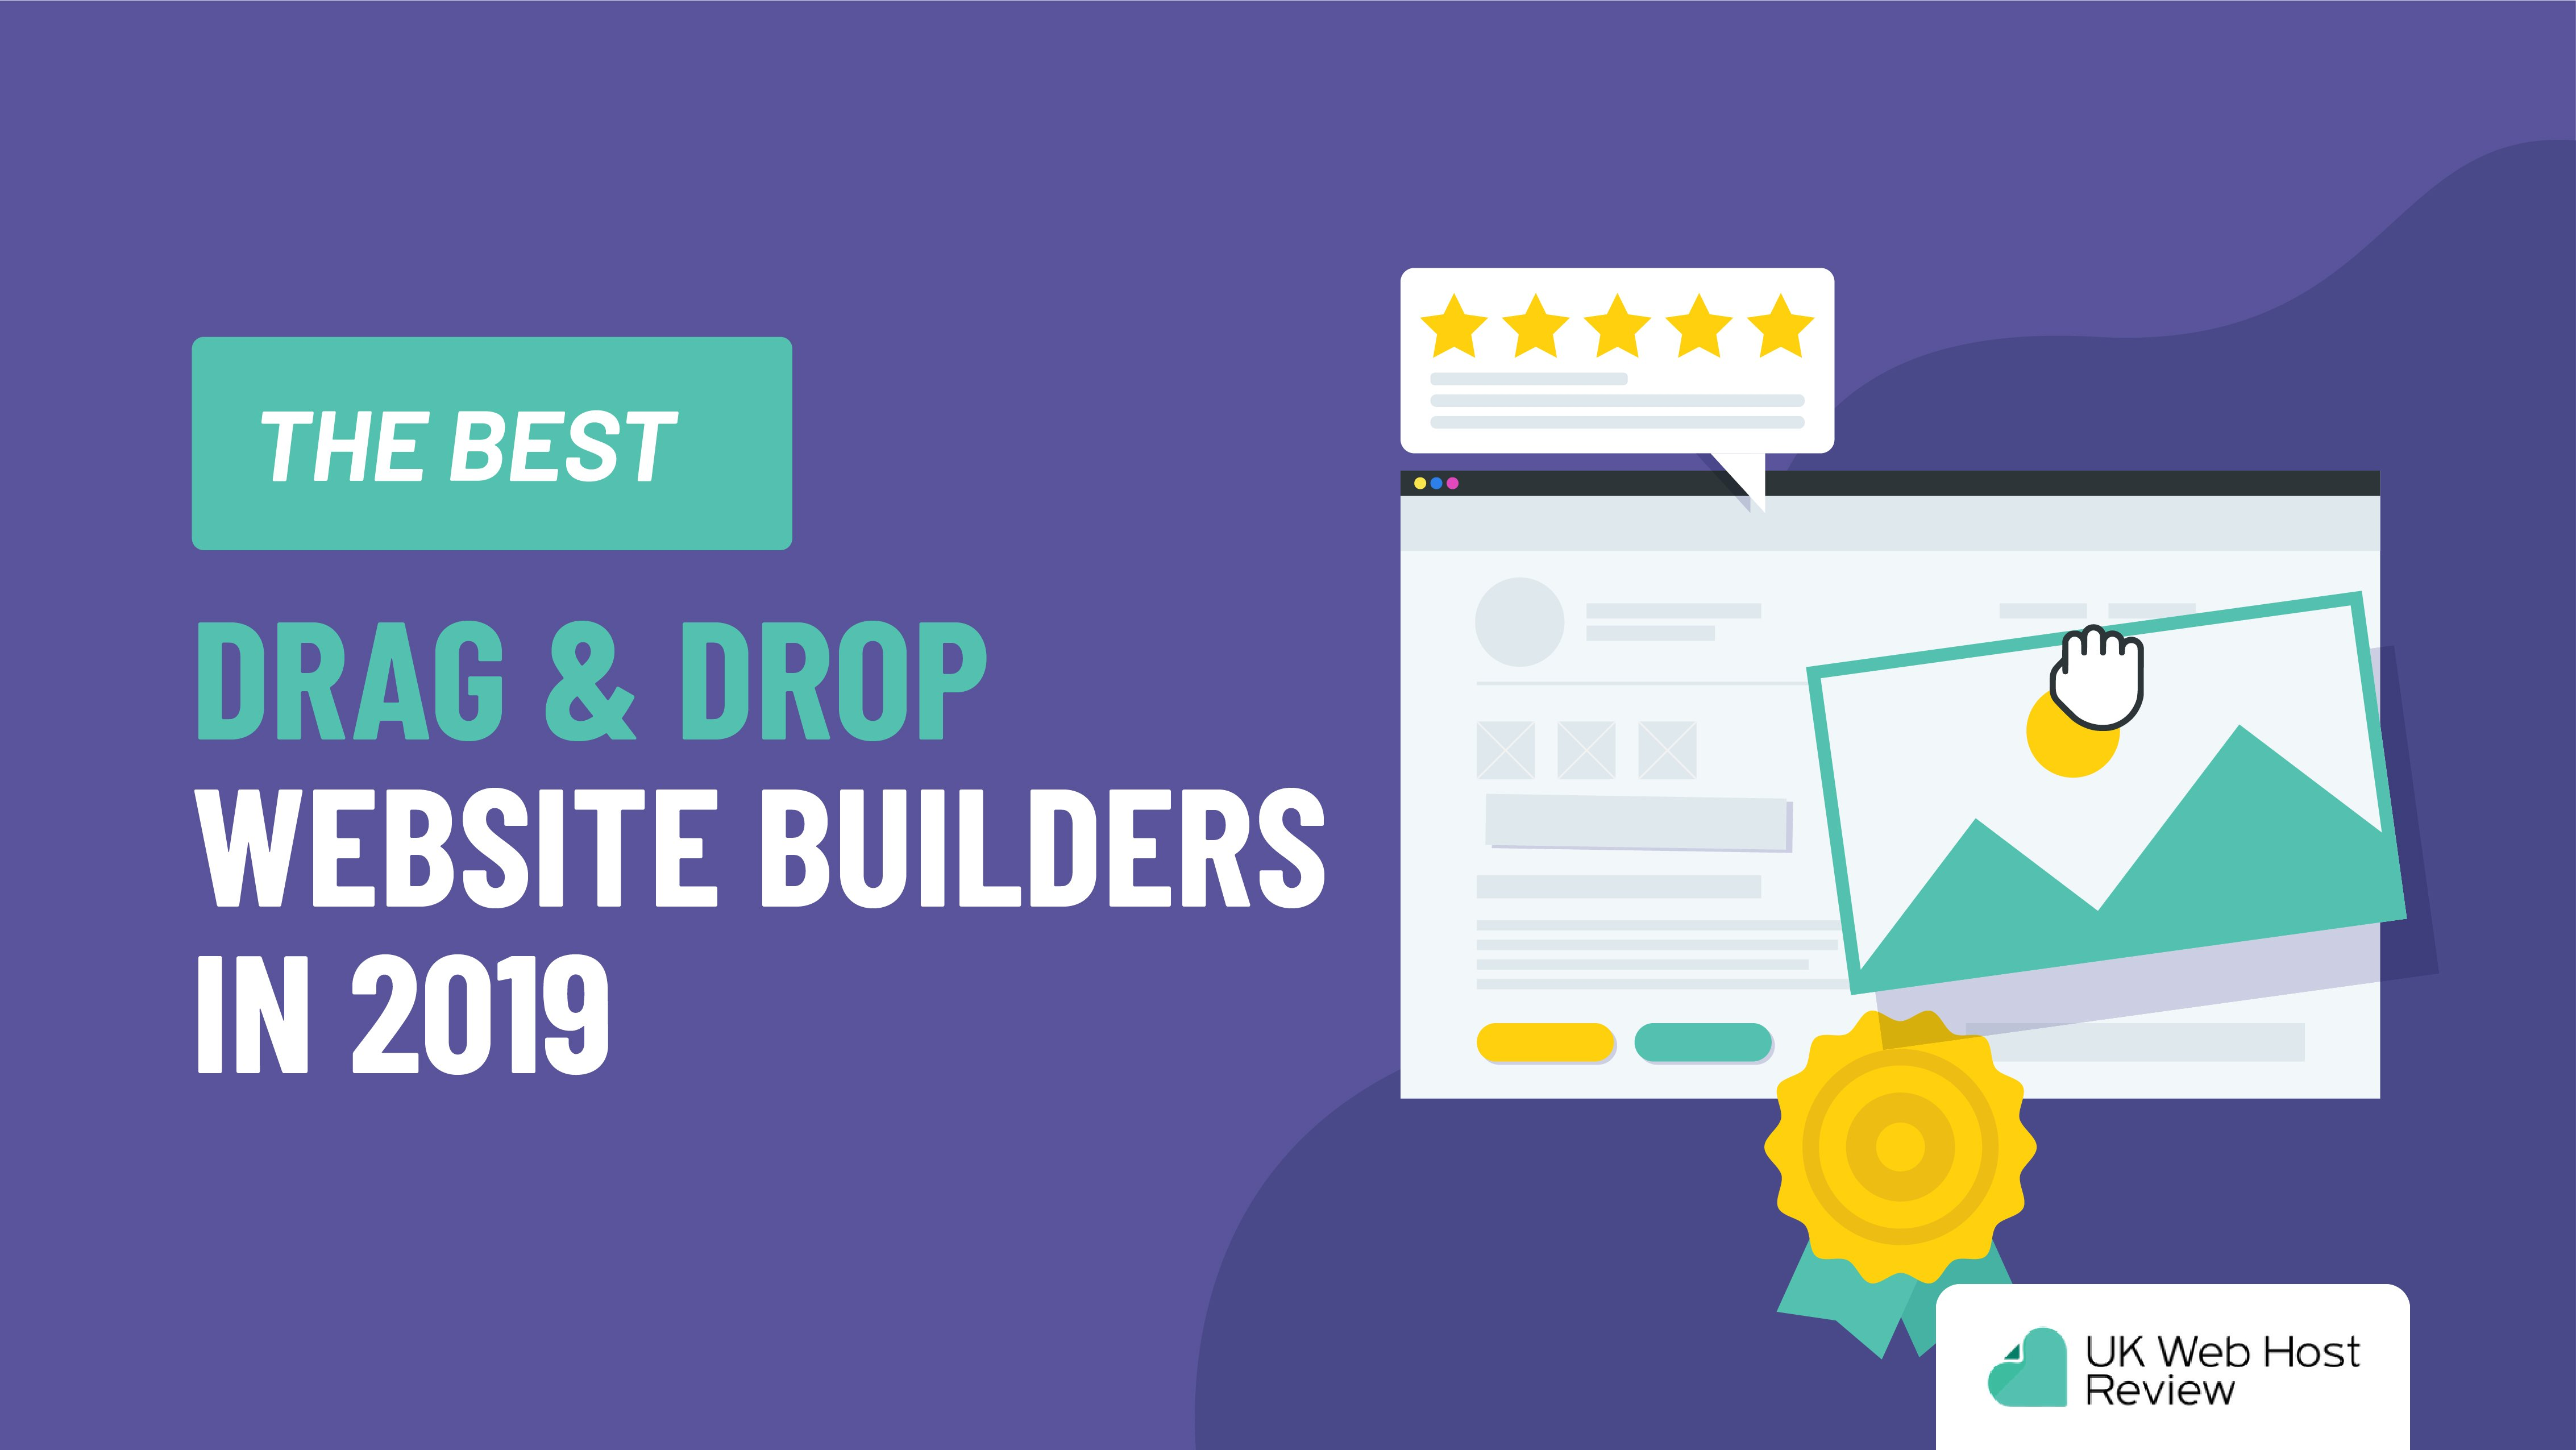 The Best Drag & Drop Website Builders in 2019